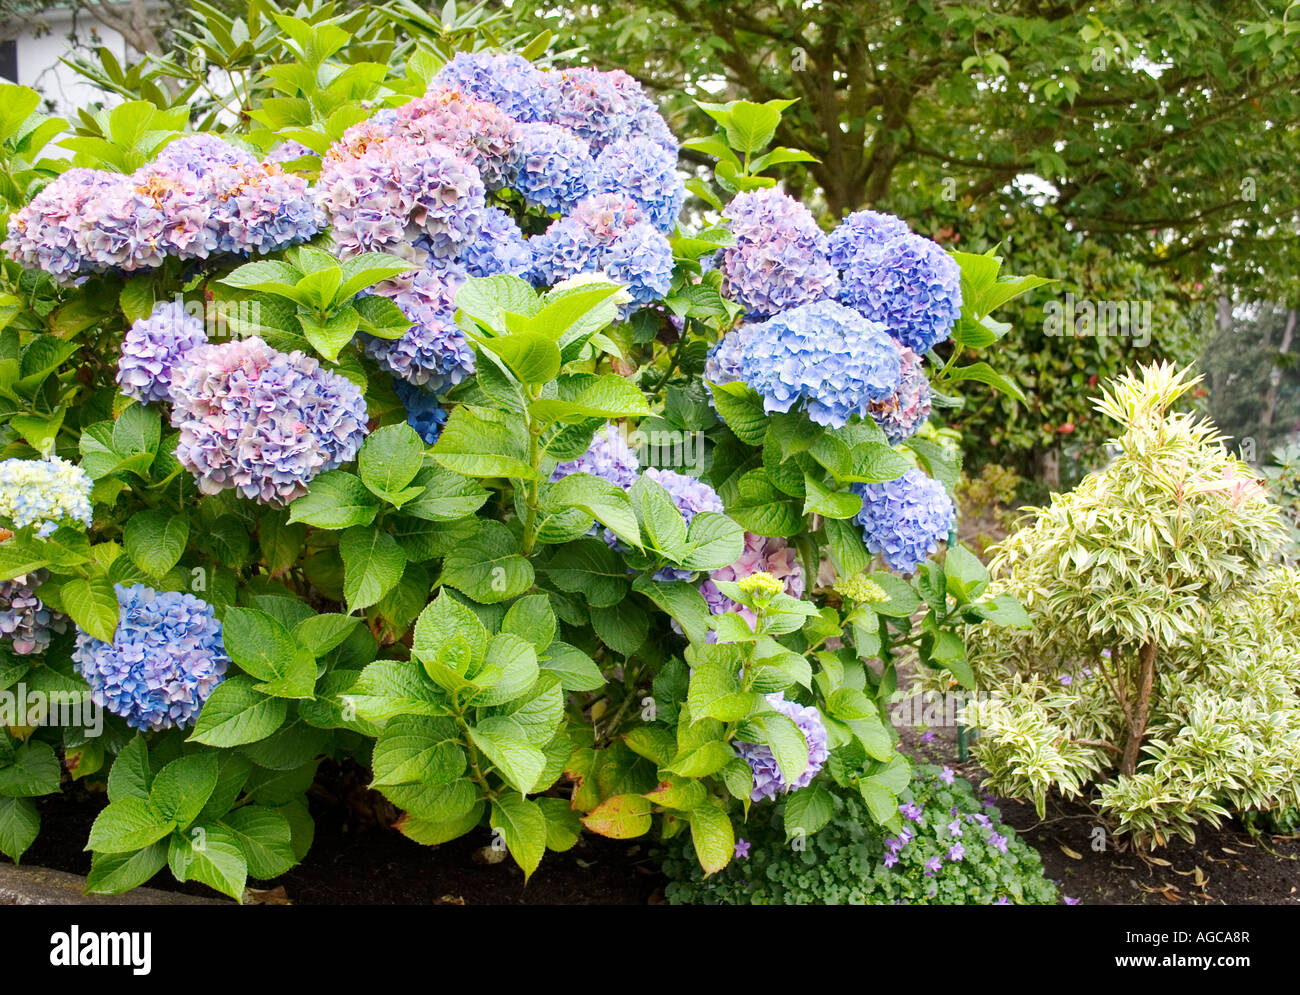 Blue Hydrangea shrub blooming profusely at the end of summer in Victoria, British Columbia. - Stock Image